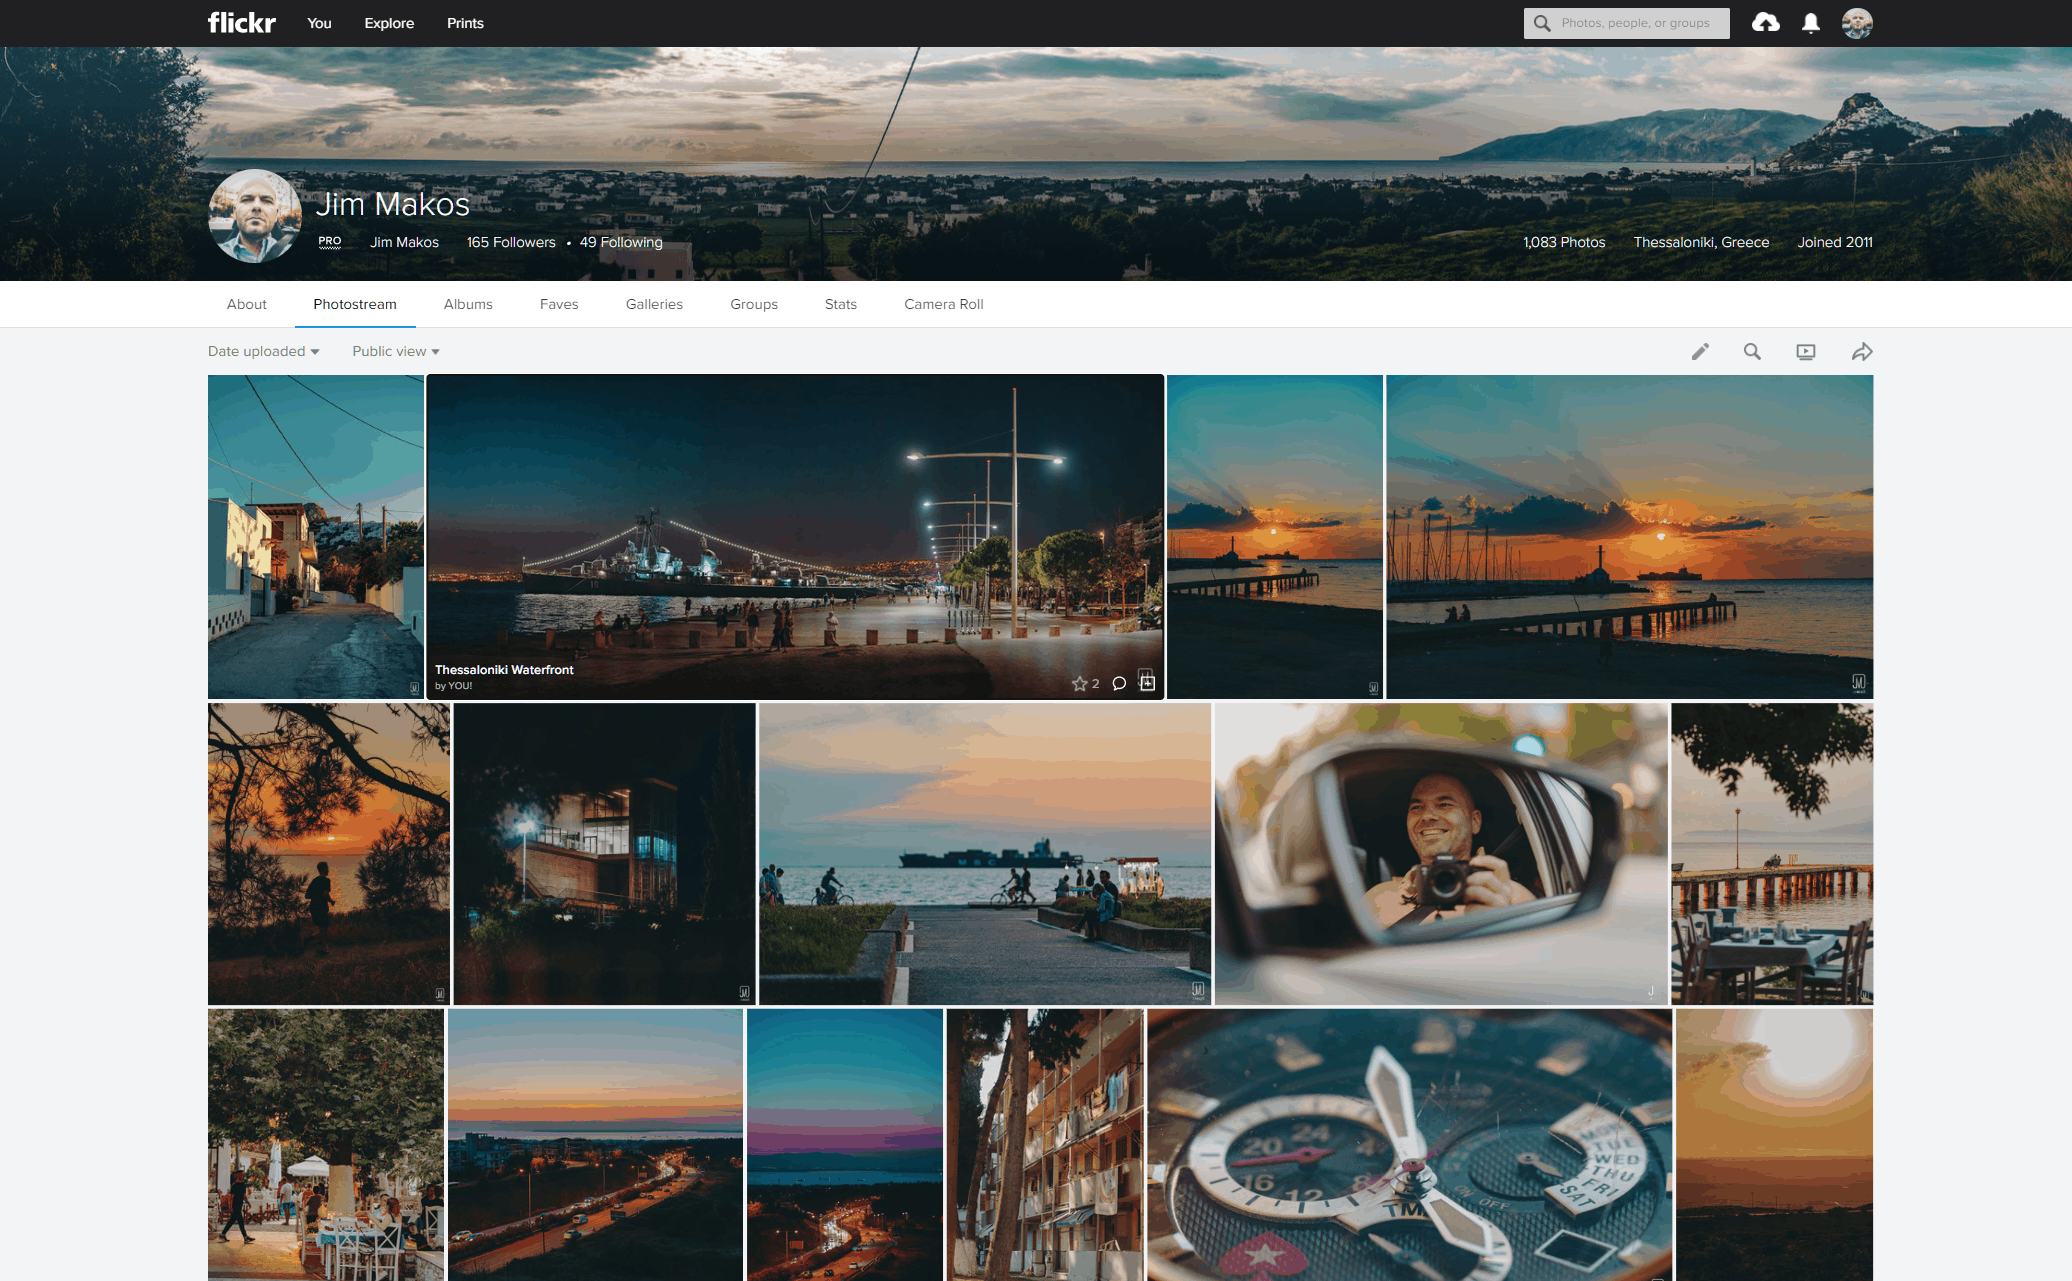 The Flickr Photostream resizes to accommodate photos of different aspect ratios